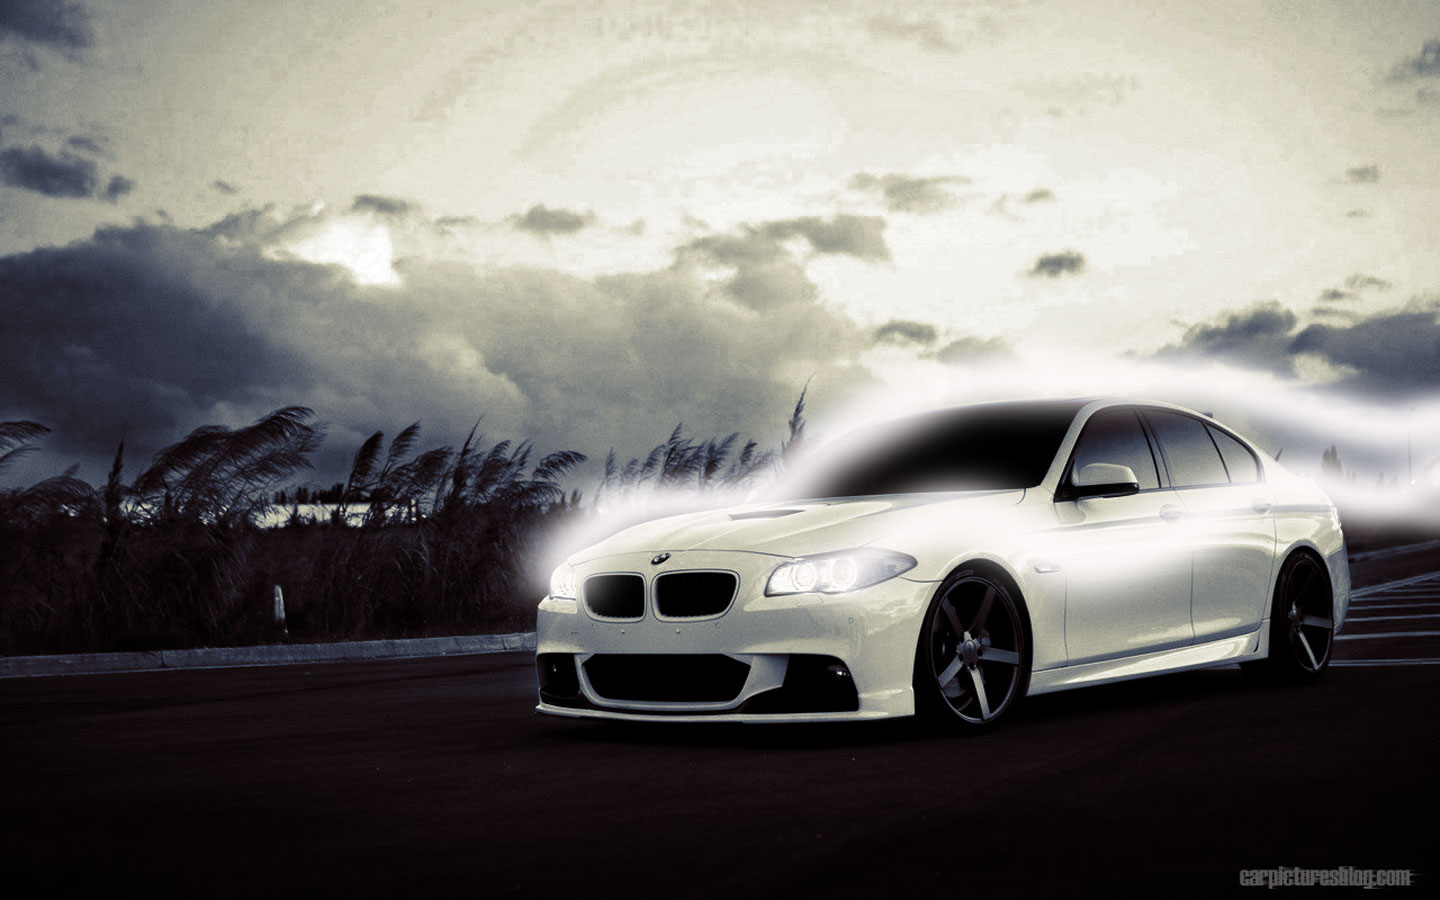 bmw car logo wallpaper hd white bmw car wallpaper hd bmw car